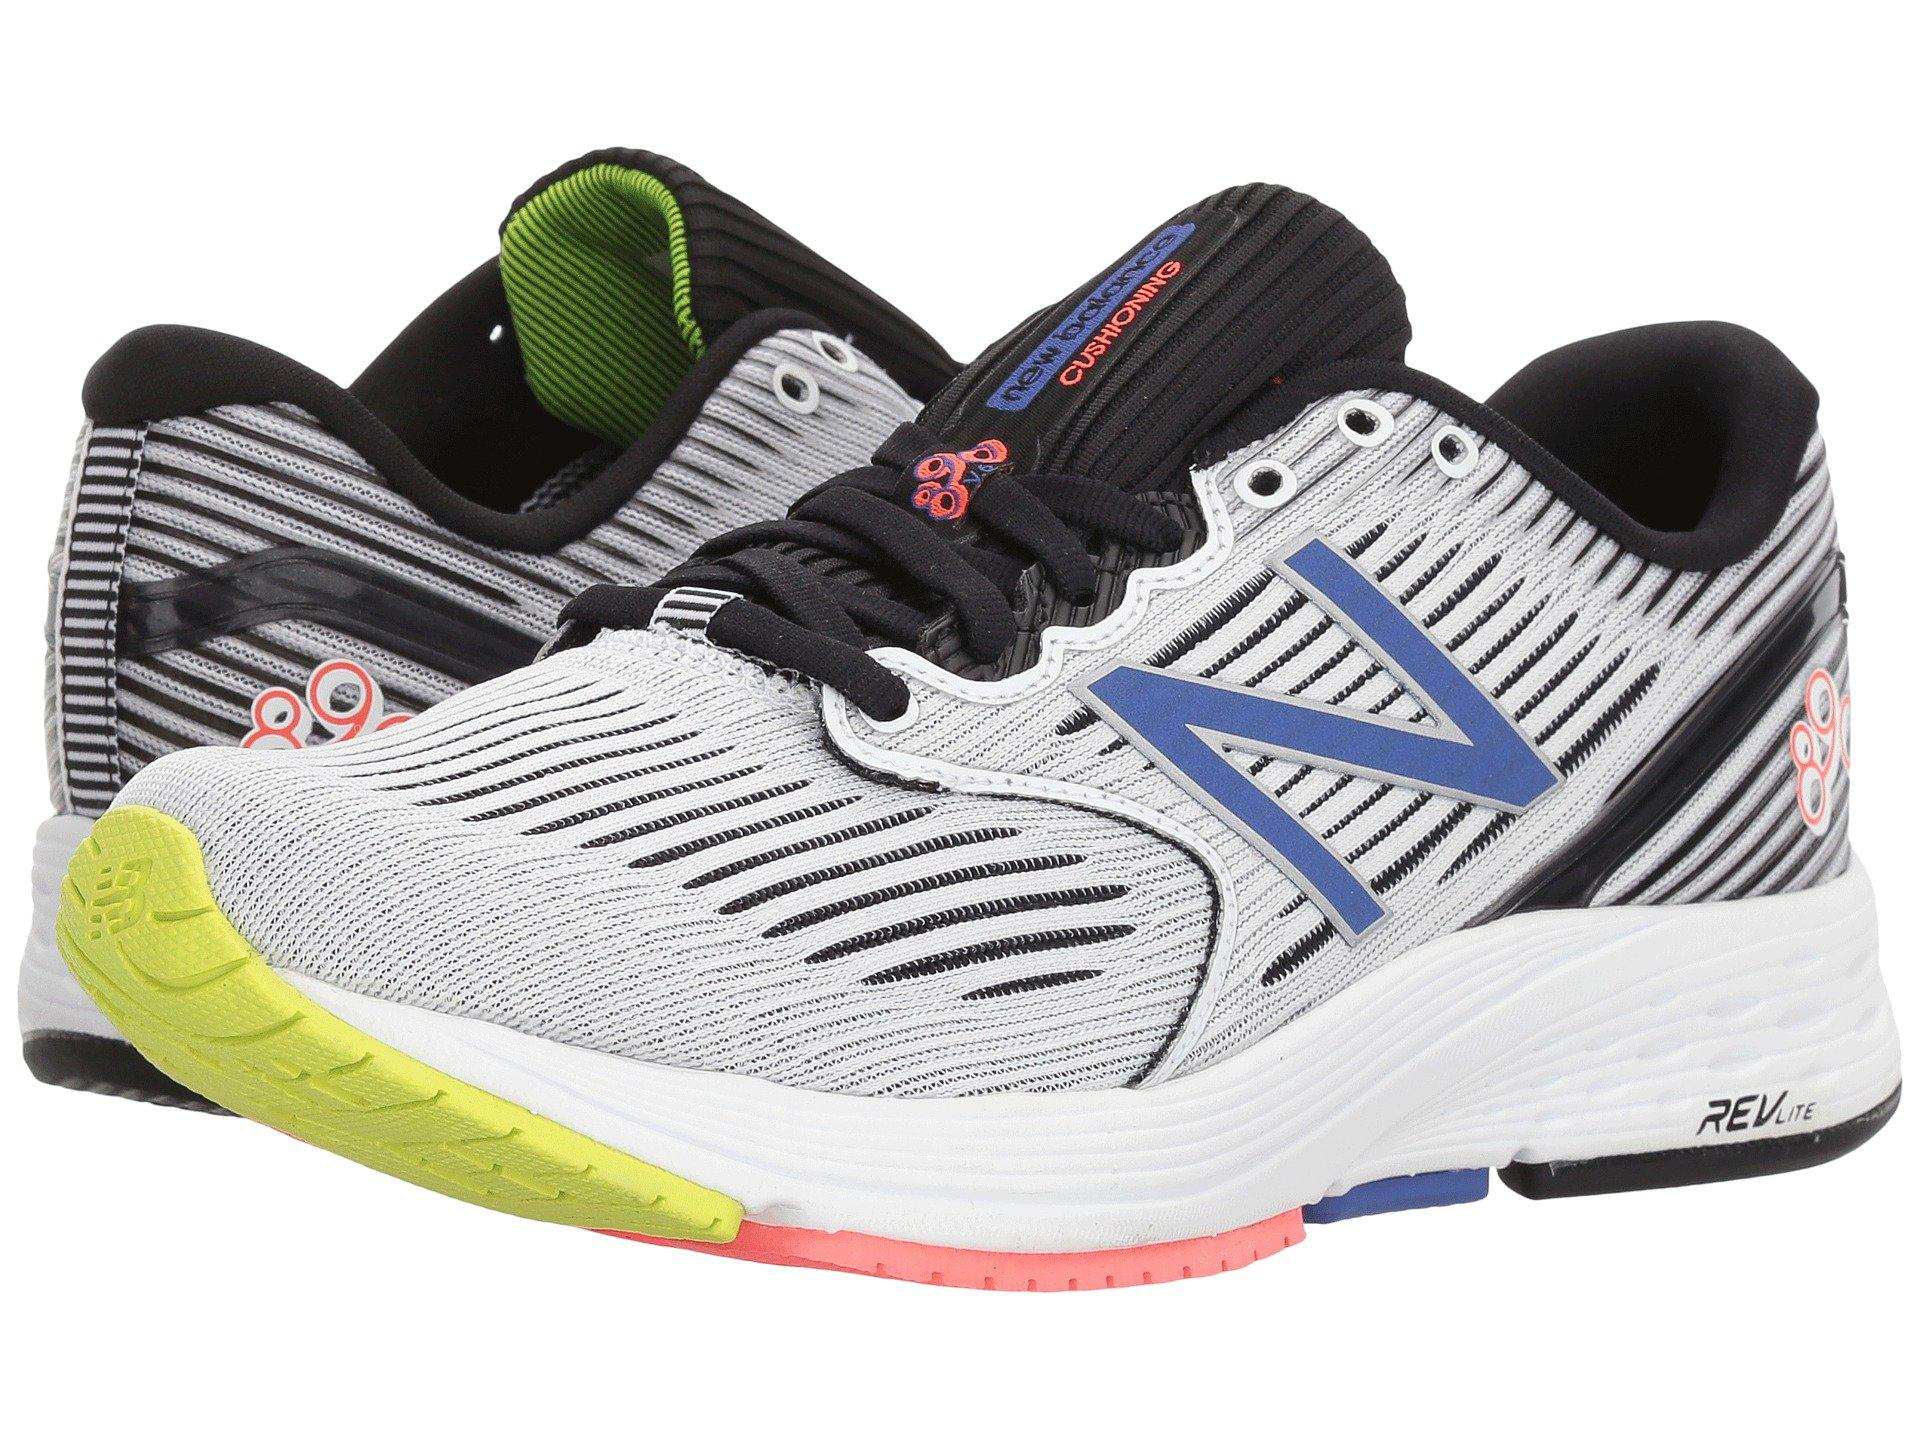 newest 9e91f e66a6 New Balance 890v6 (gunmetal pink Glo) Women s Running Shoes in Blue ...